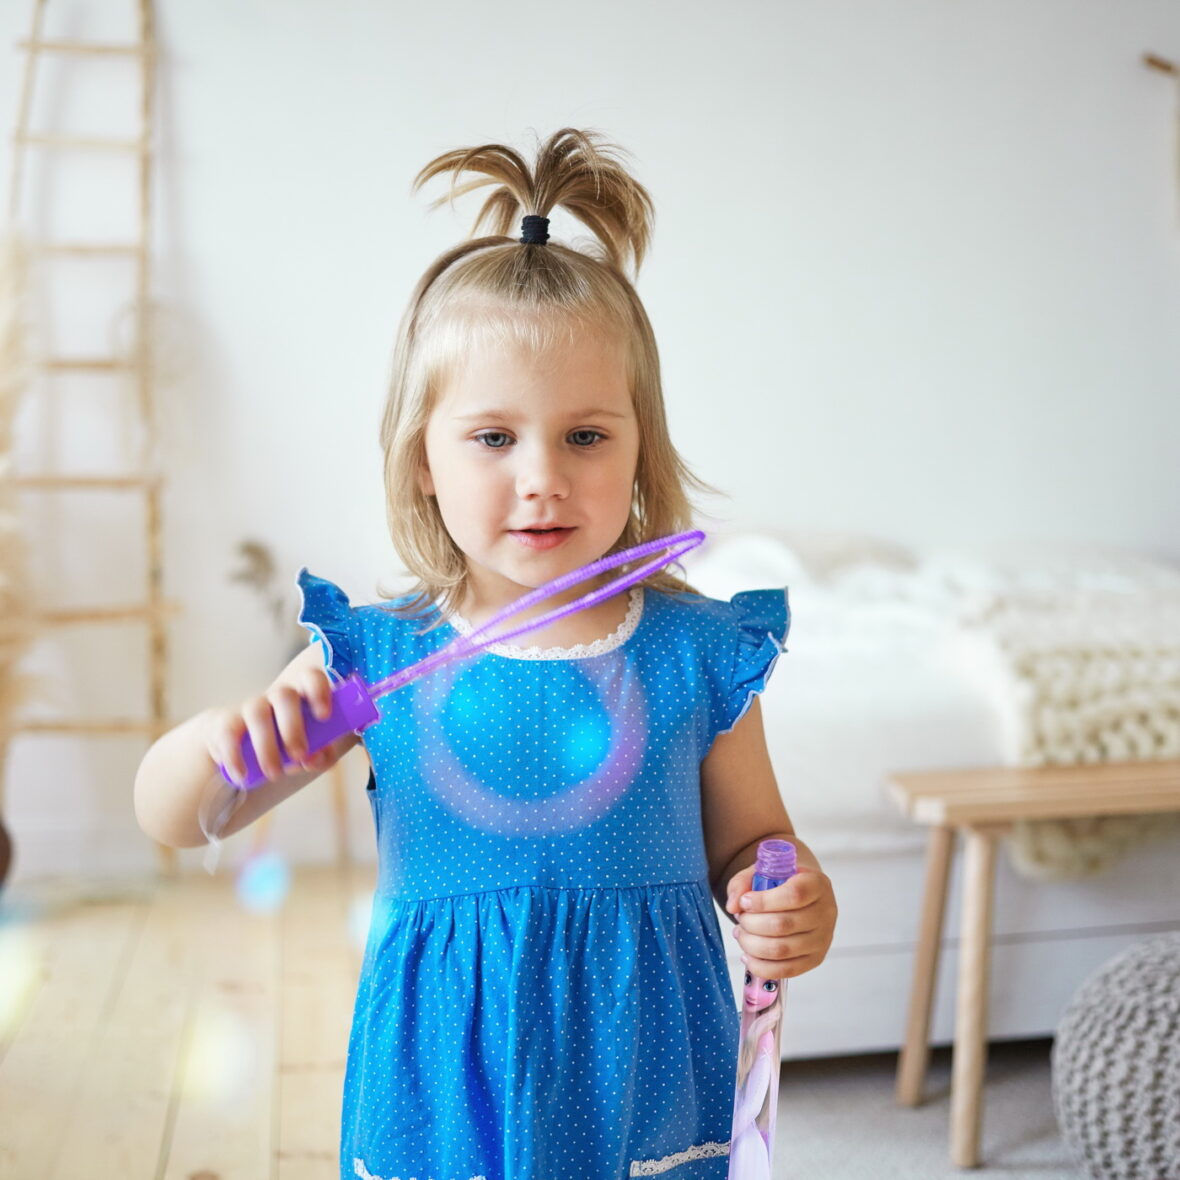 Happy beautiful female kid with ponytail having fun indoors, blowing soap bubbles in parents bedroom. Charming little girl wearing cute blue dress entertaining herself, playing at home alone